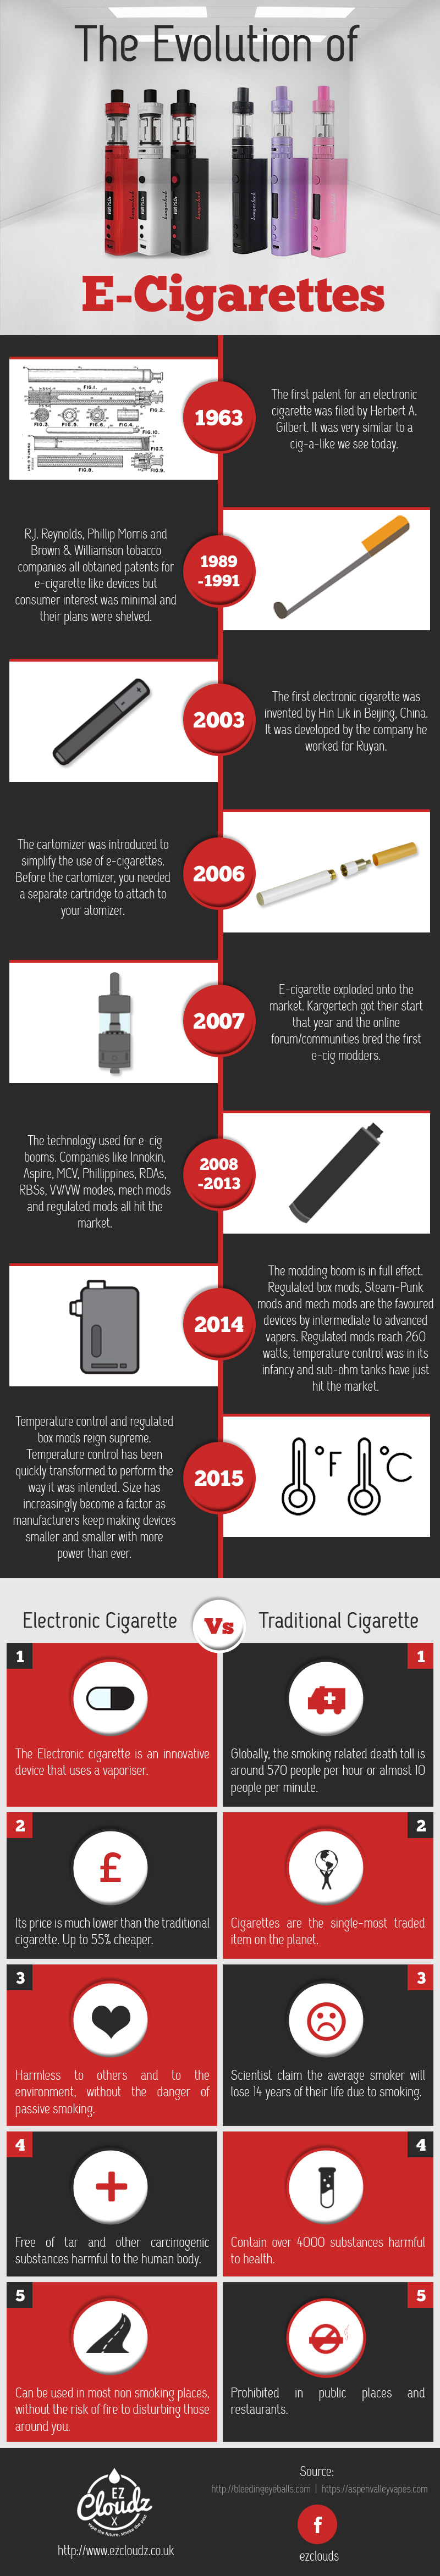 Evolution of E-cigarette